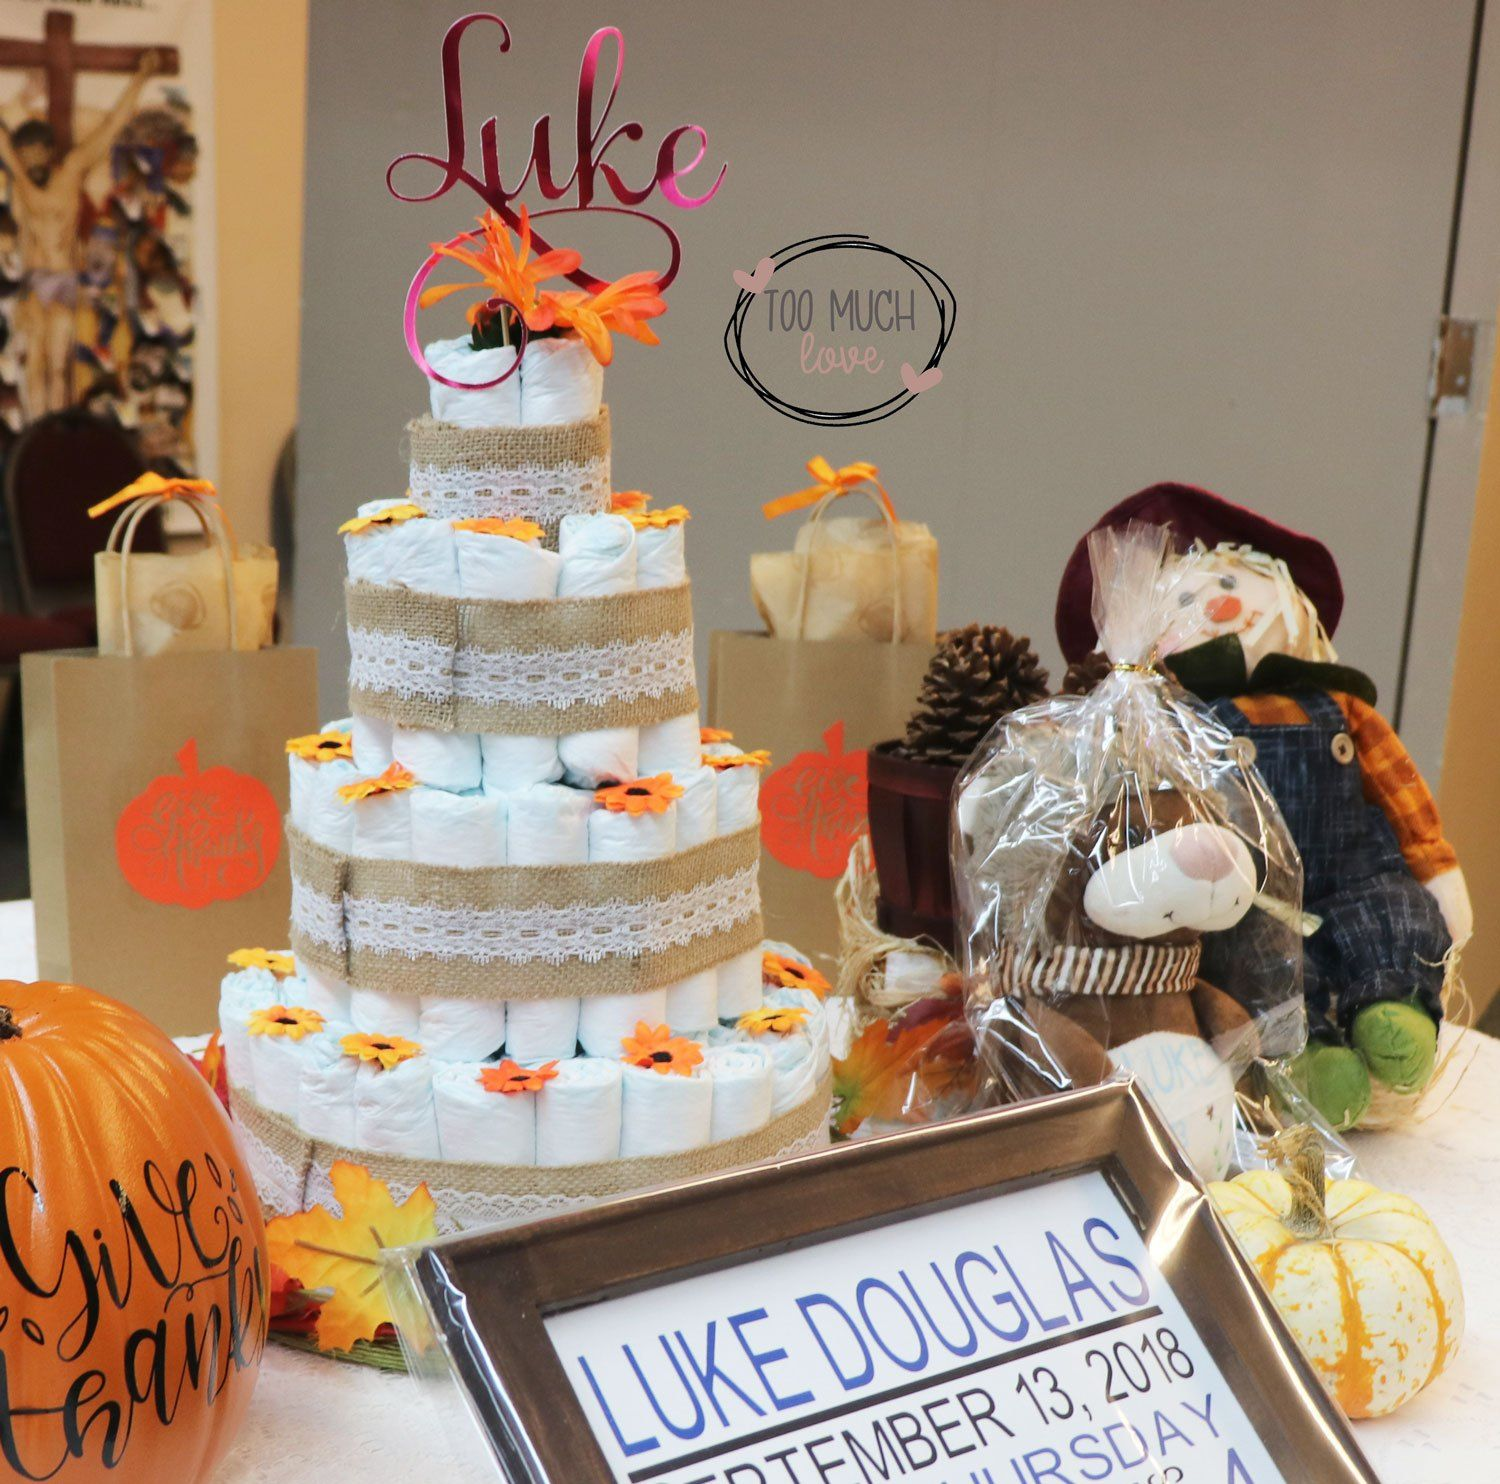 How to make a diaper cake cricut and silhouette projects